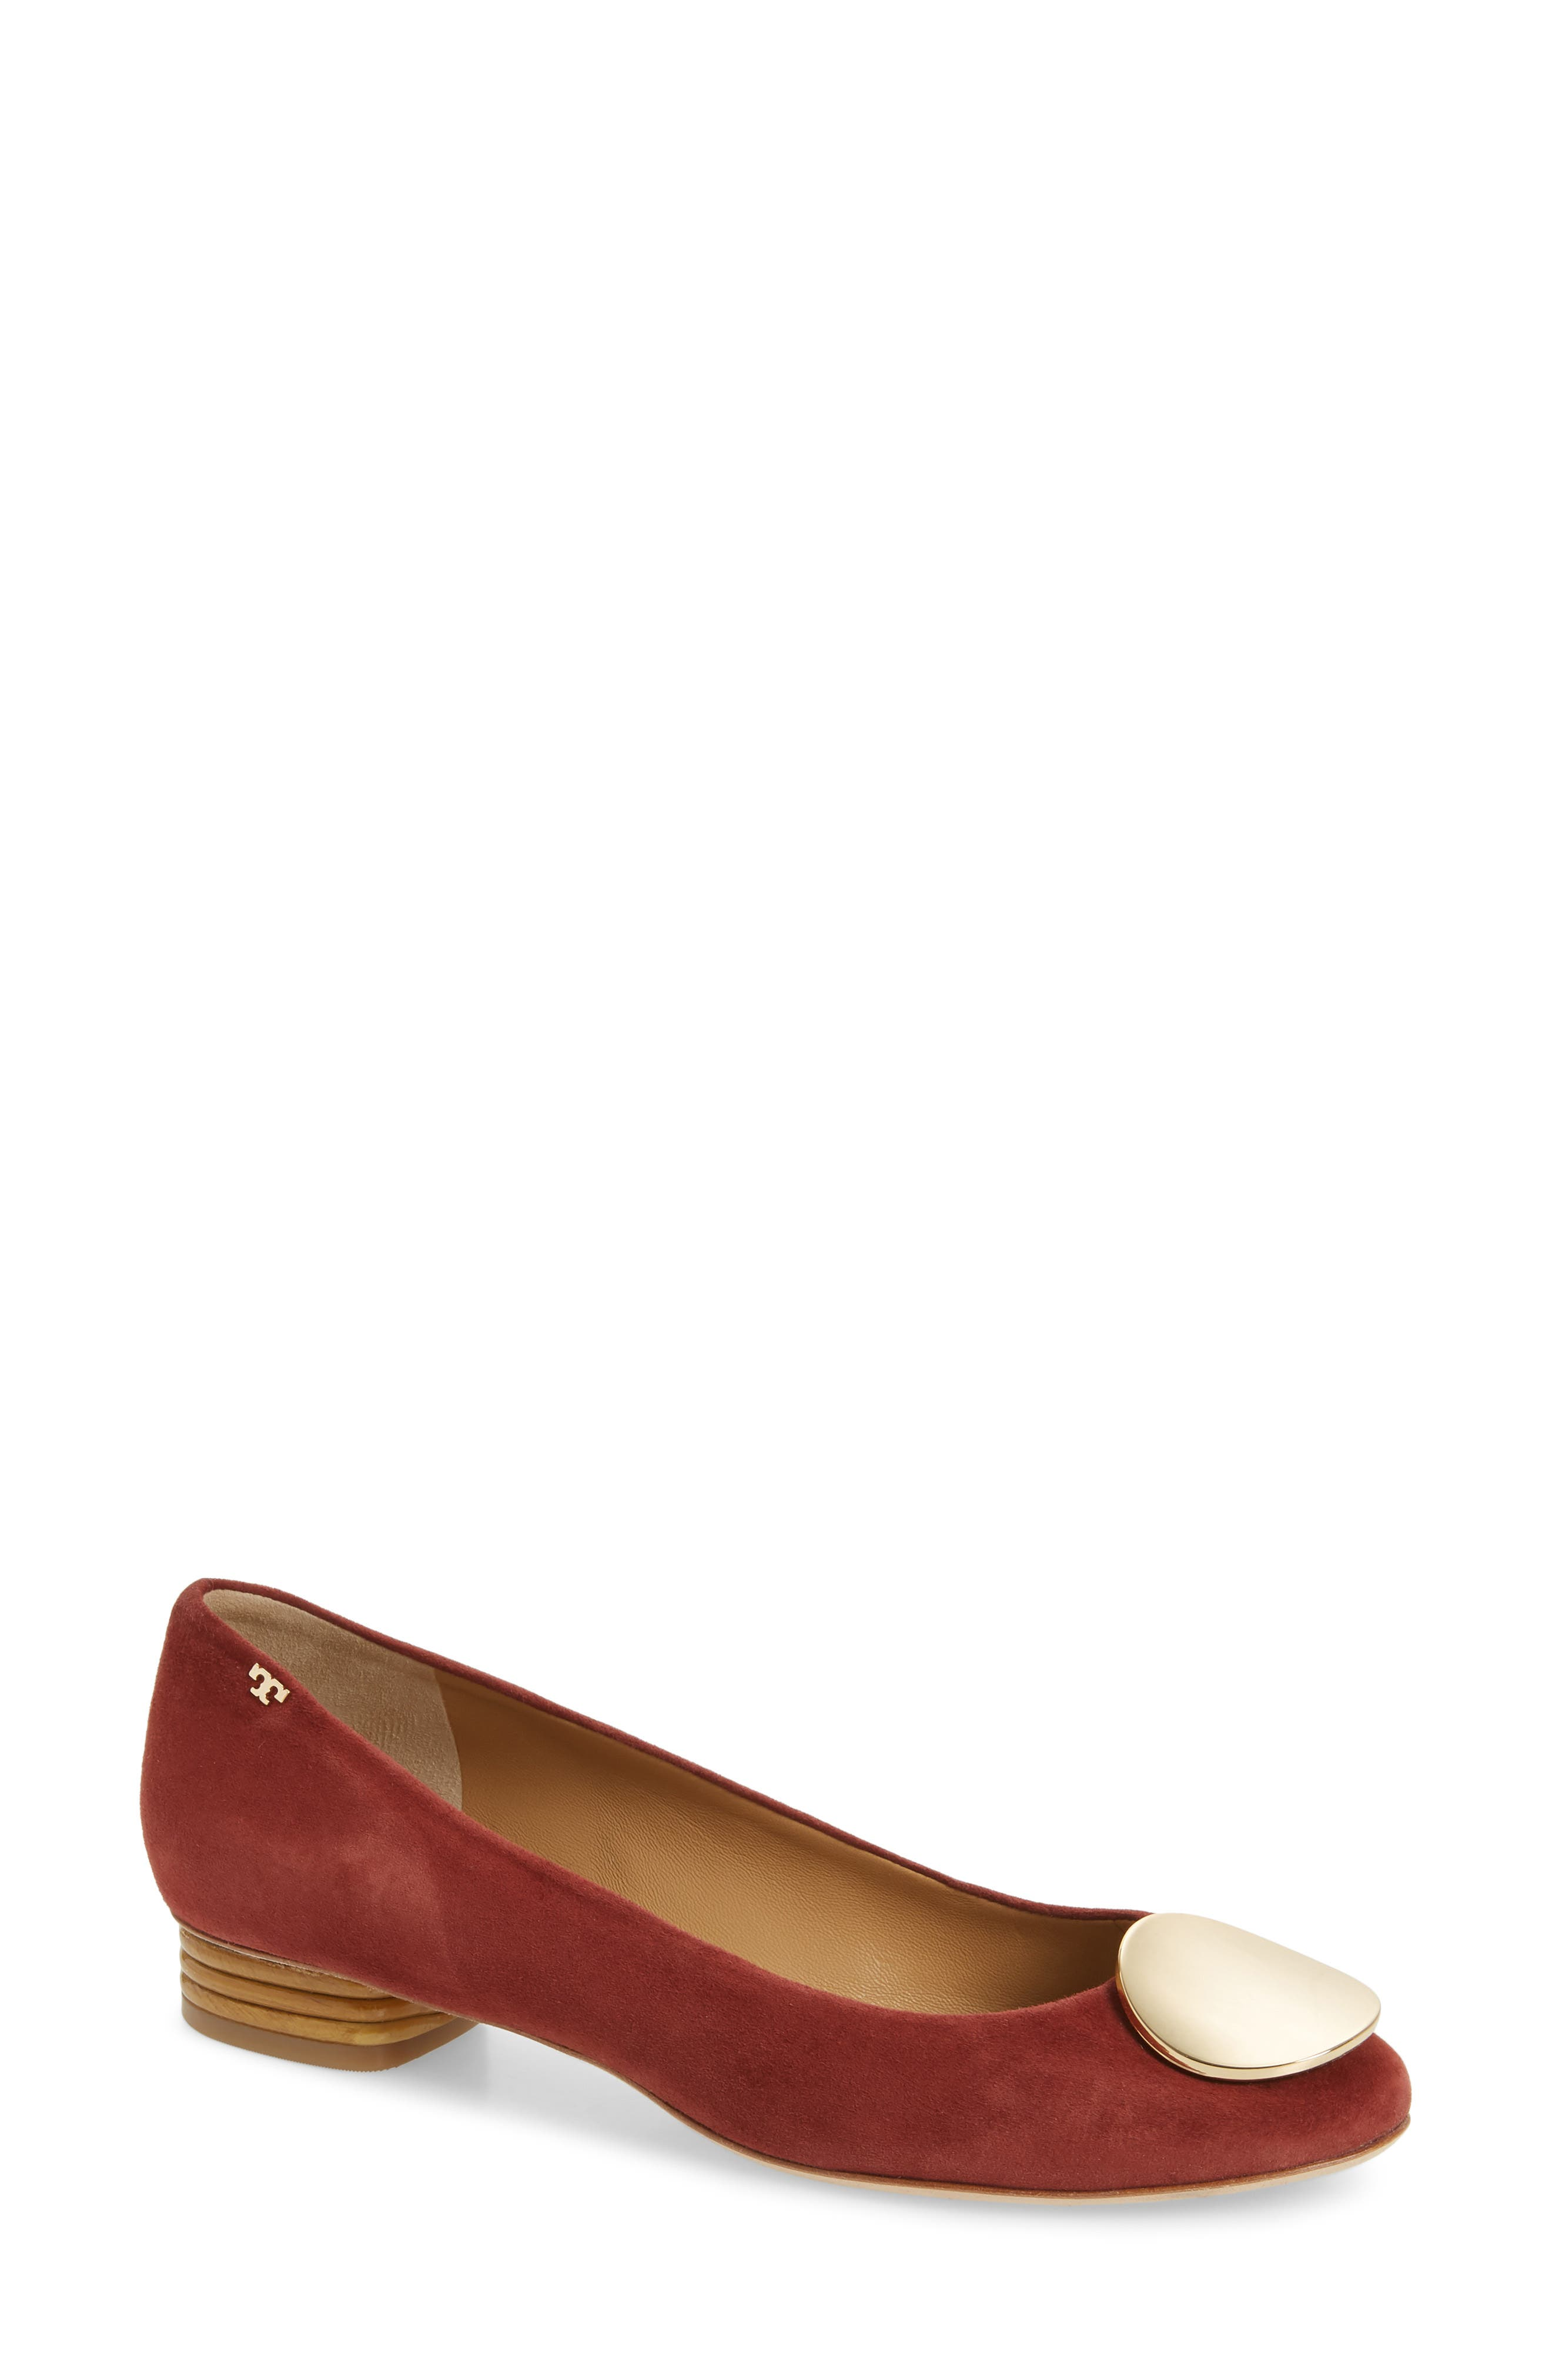 Tory Burch Patos Medallion Flat, Red